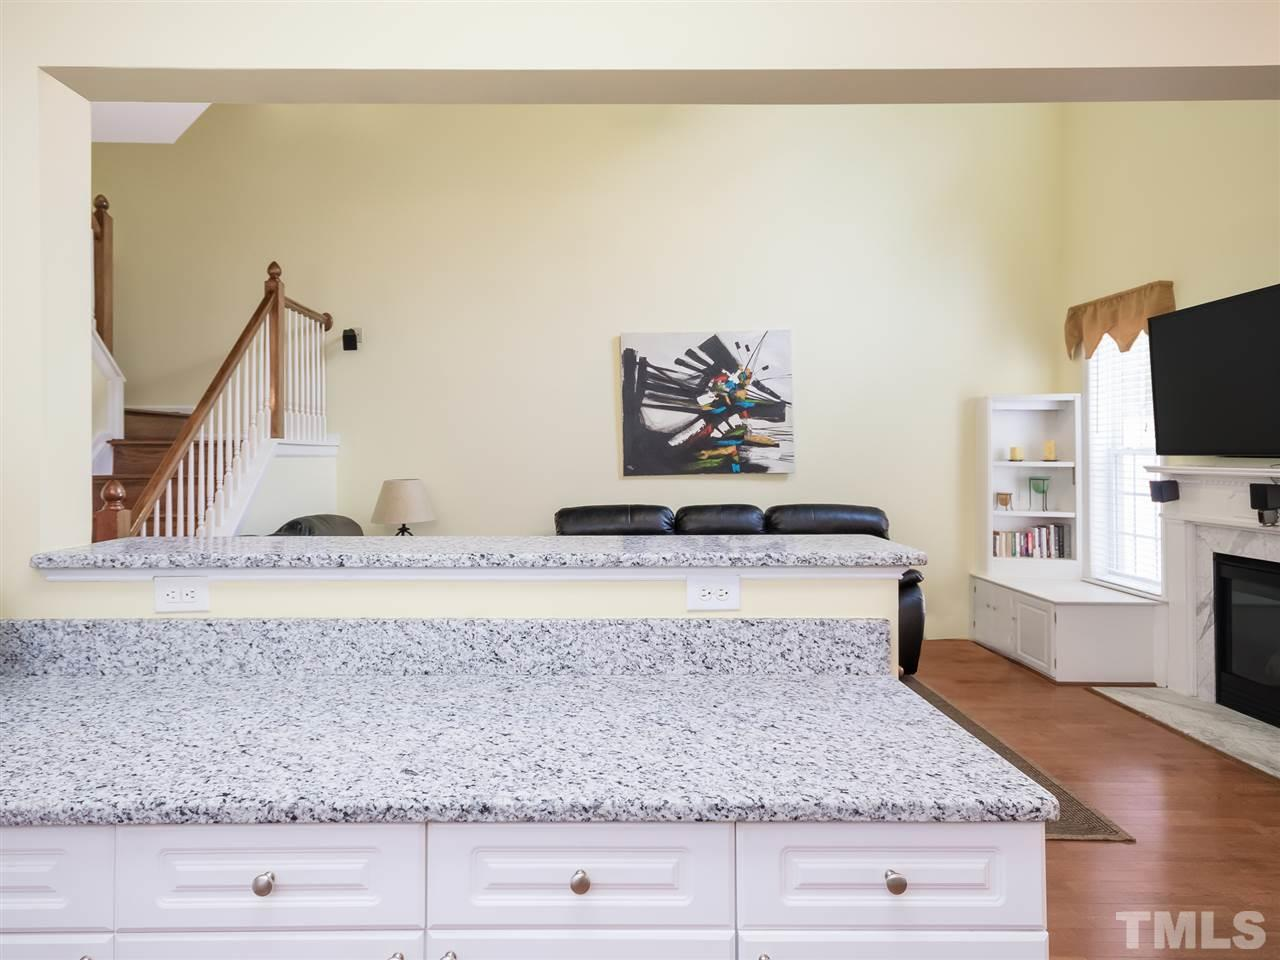 Beautiful granite countertops! Have parties? This home lends itself to fun gatherings!